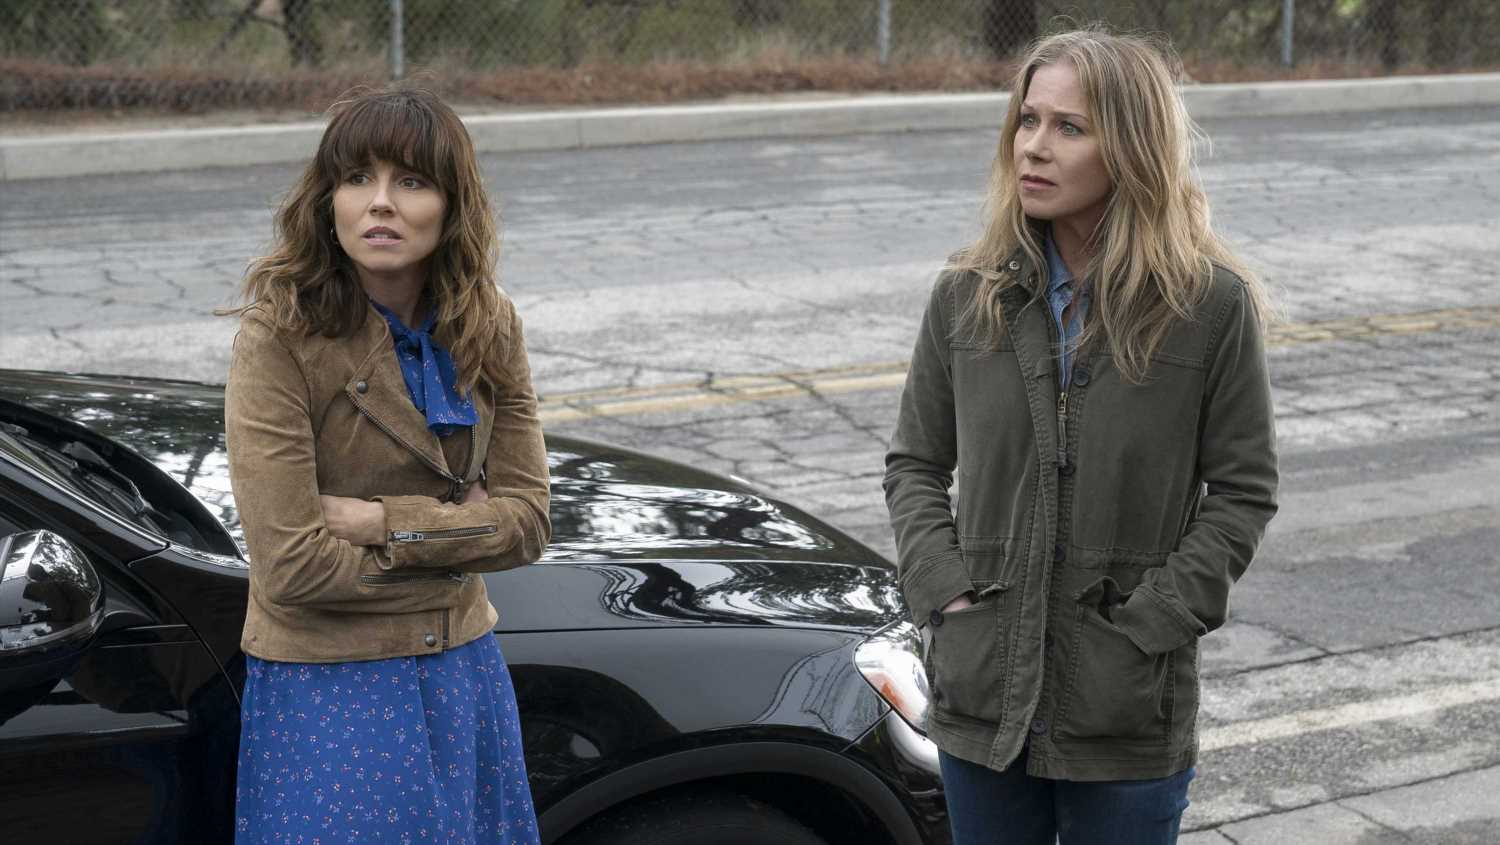 TV Review: 'Dead to Me' With Christina Applegate and Linda Cardellini